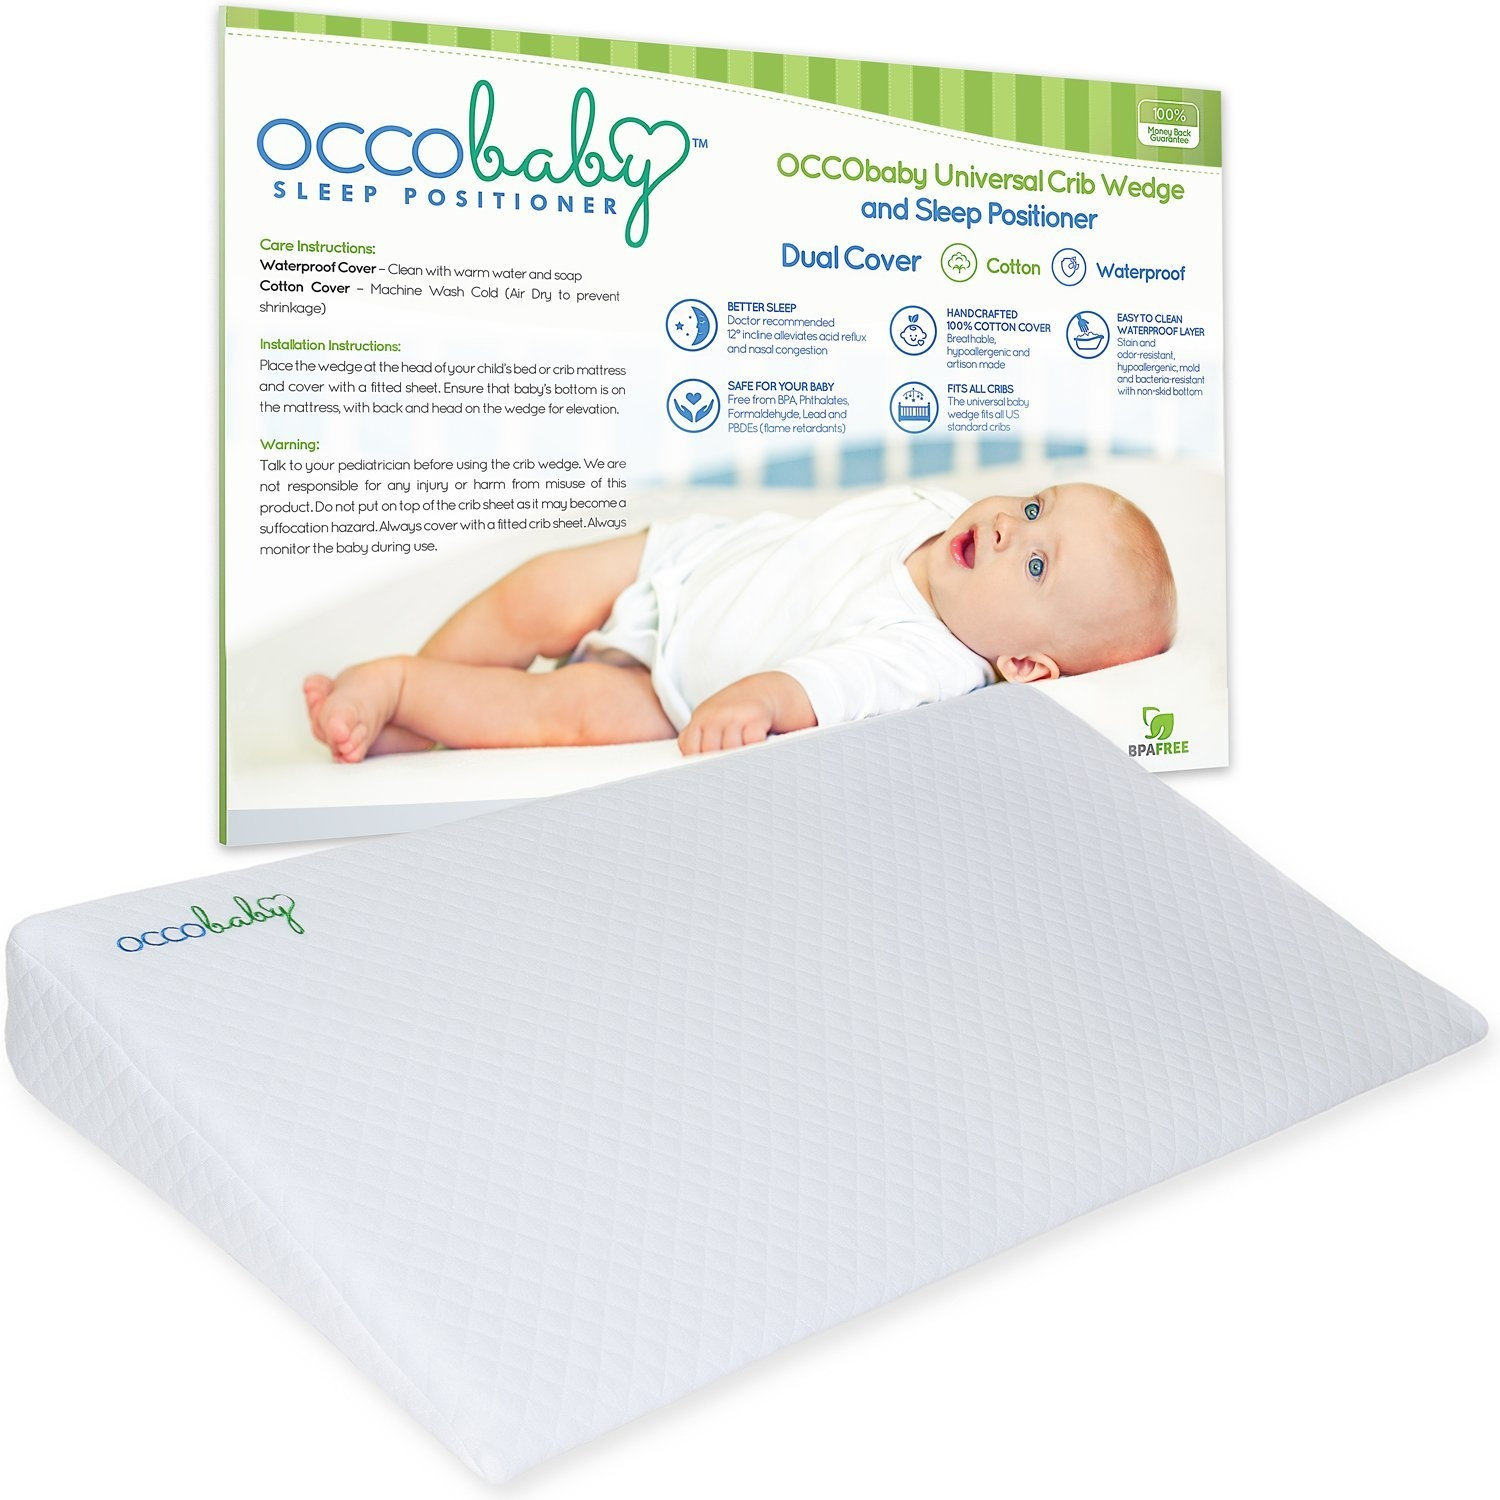 OCCObaby Universal Crib Wedge and Sleep Positioner for Baby Mattress |  Waterproof Layer & Handcrafted Cotton Removable Cover | 12-degree Incline  for